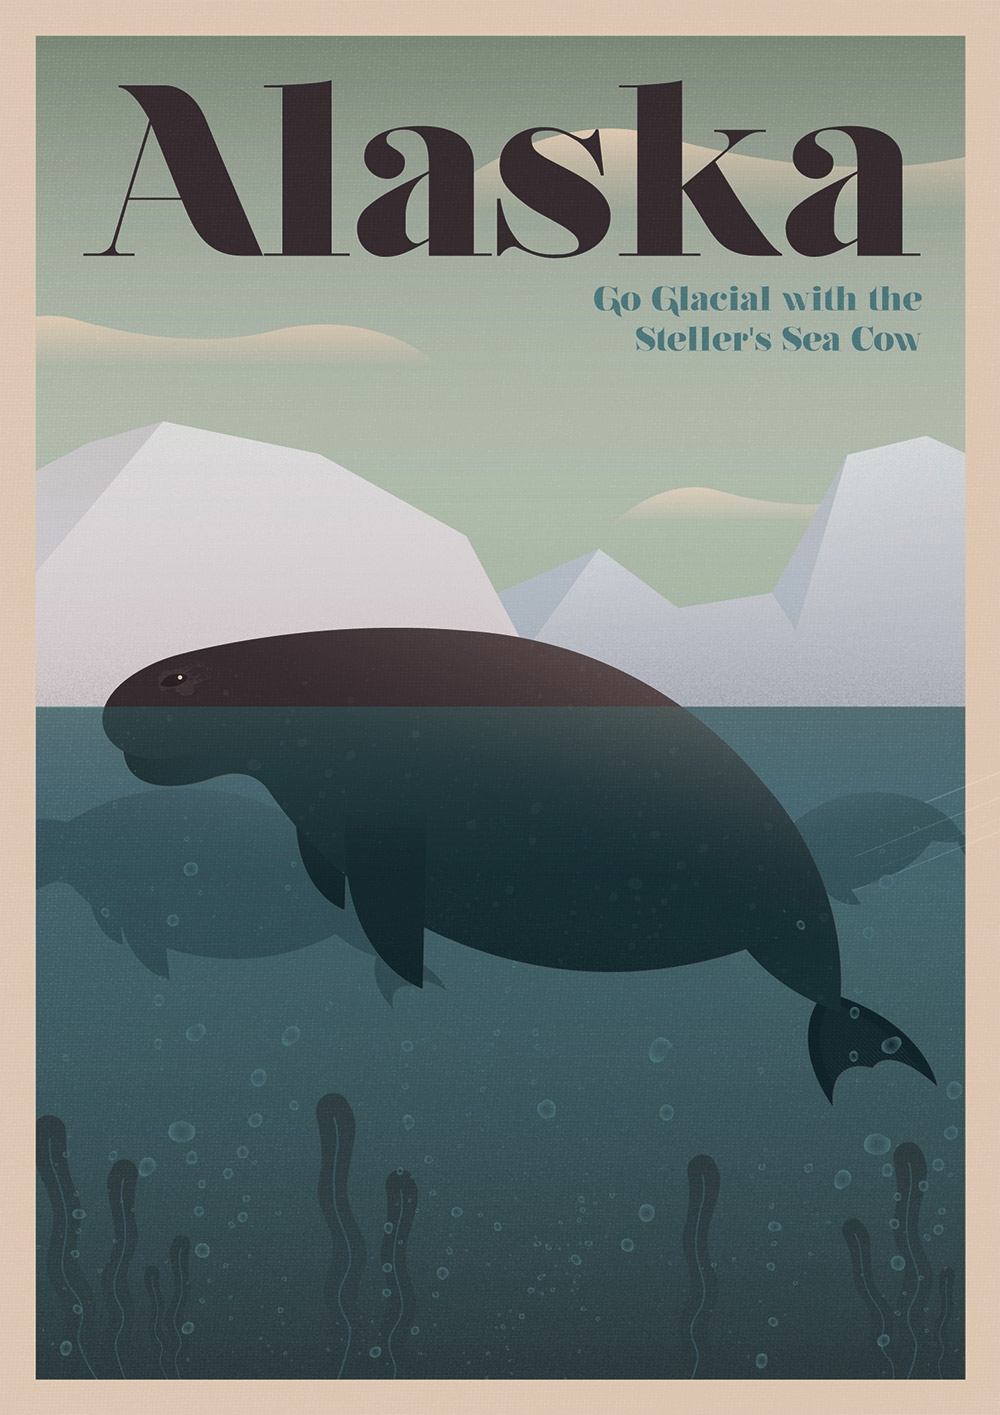 Steller's Sea Cow Visitors to Alaska can see amazing wildlife, including grizzly bears, whales, and caribou, but not the Steller's Sea Cow, which was hunted to extinction by 1768.